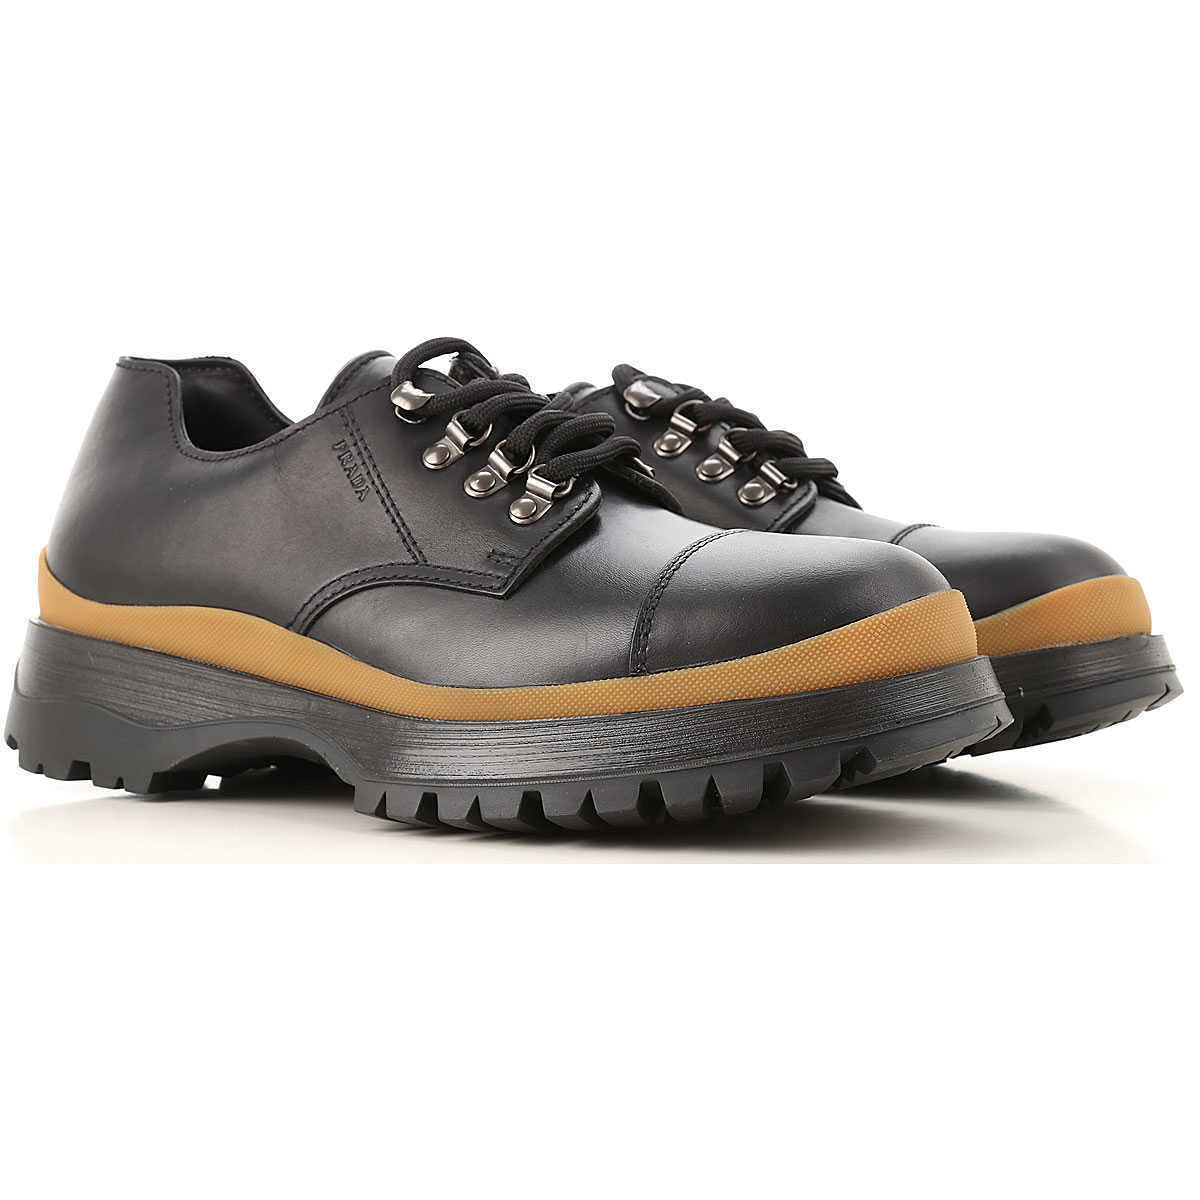 Prada Lace Up Shoes for Men Oxfords Derbies and Brogues On Sale DK - GOOFASH - Mens FORMAL SHOES